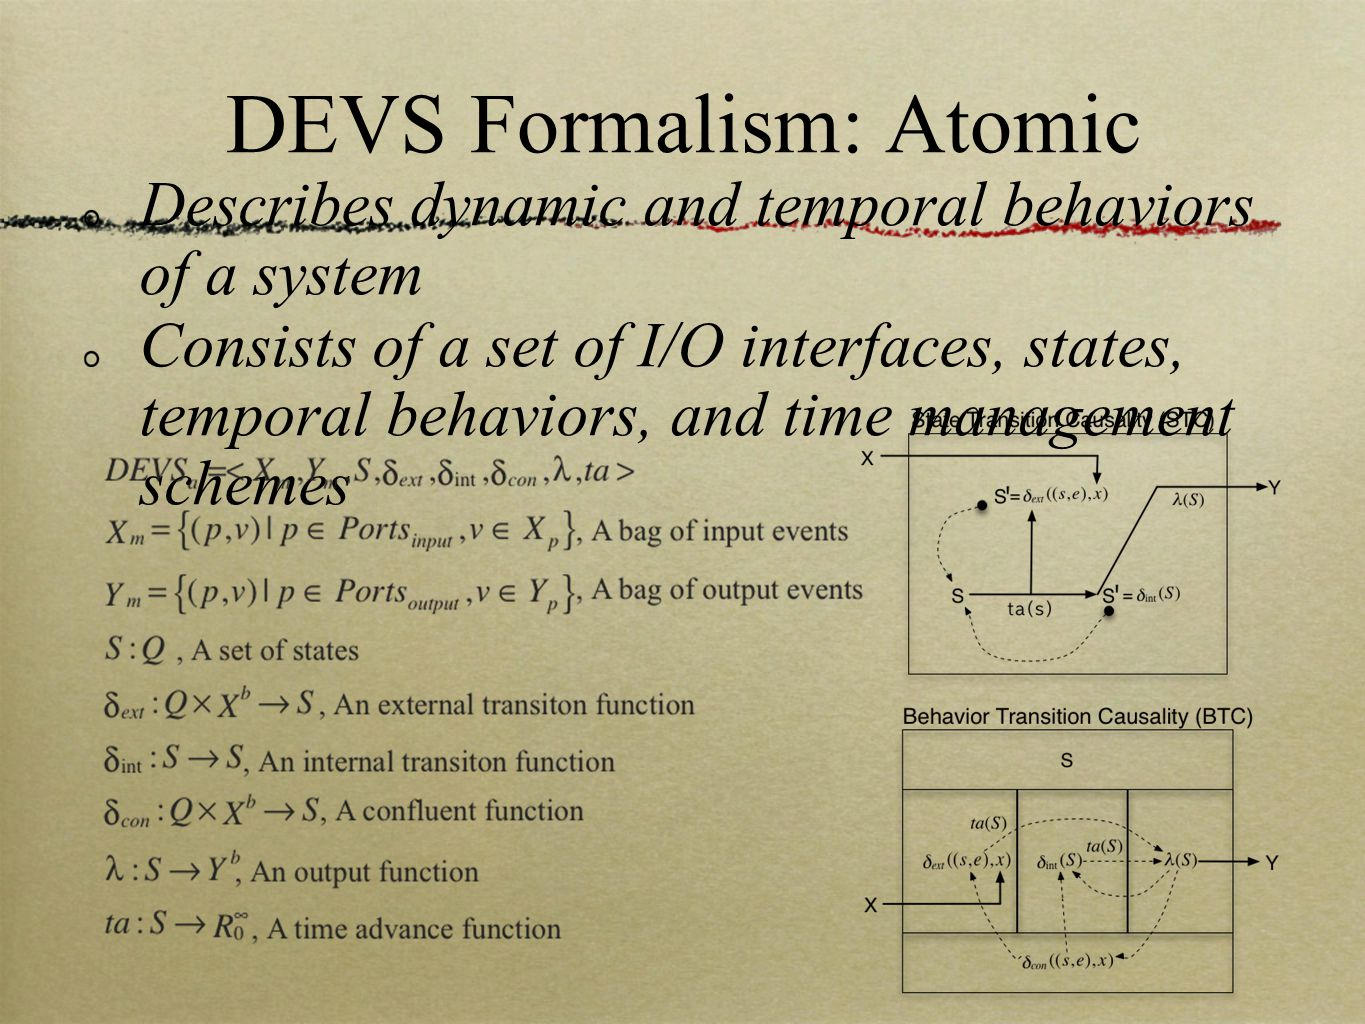 DEVS Formalism: Coupled Describes structural relationship and event propagation between components of a system* Consists of a set of I/O interfaces, components, and couplings** * A component can be an atomic or a coupled system ** A coupling specifies one-directional event propagation from an event producer to a set of event consumers